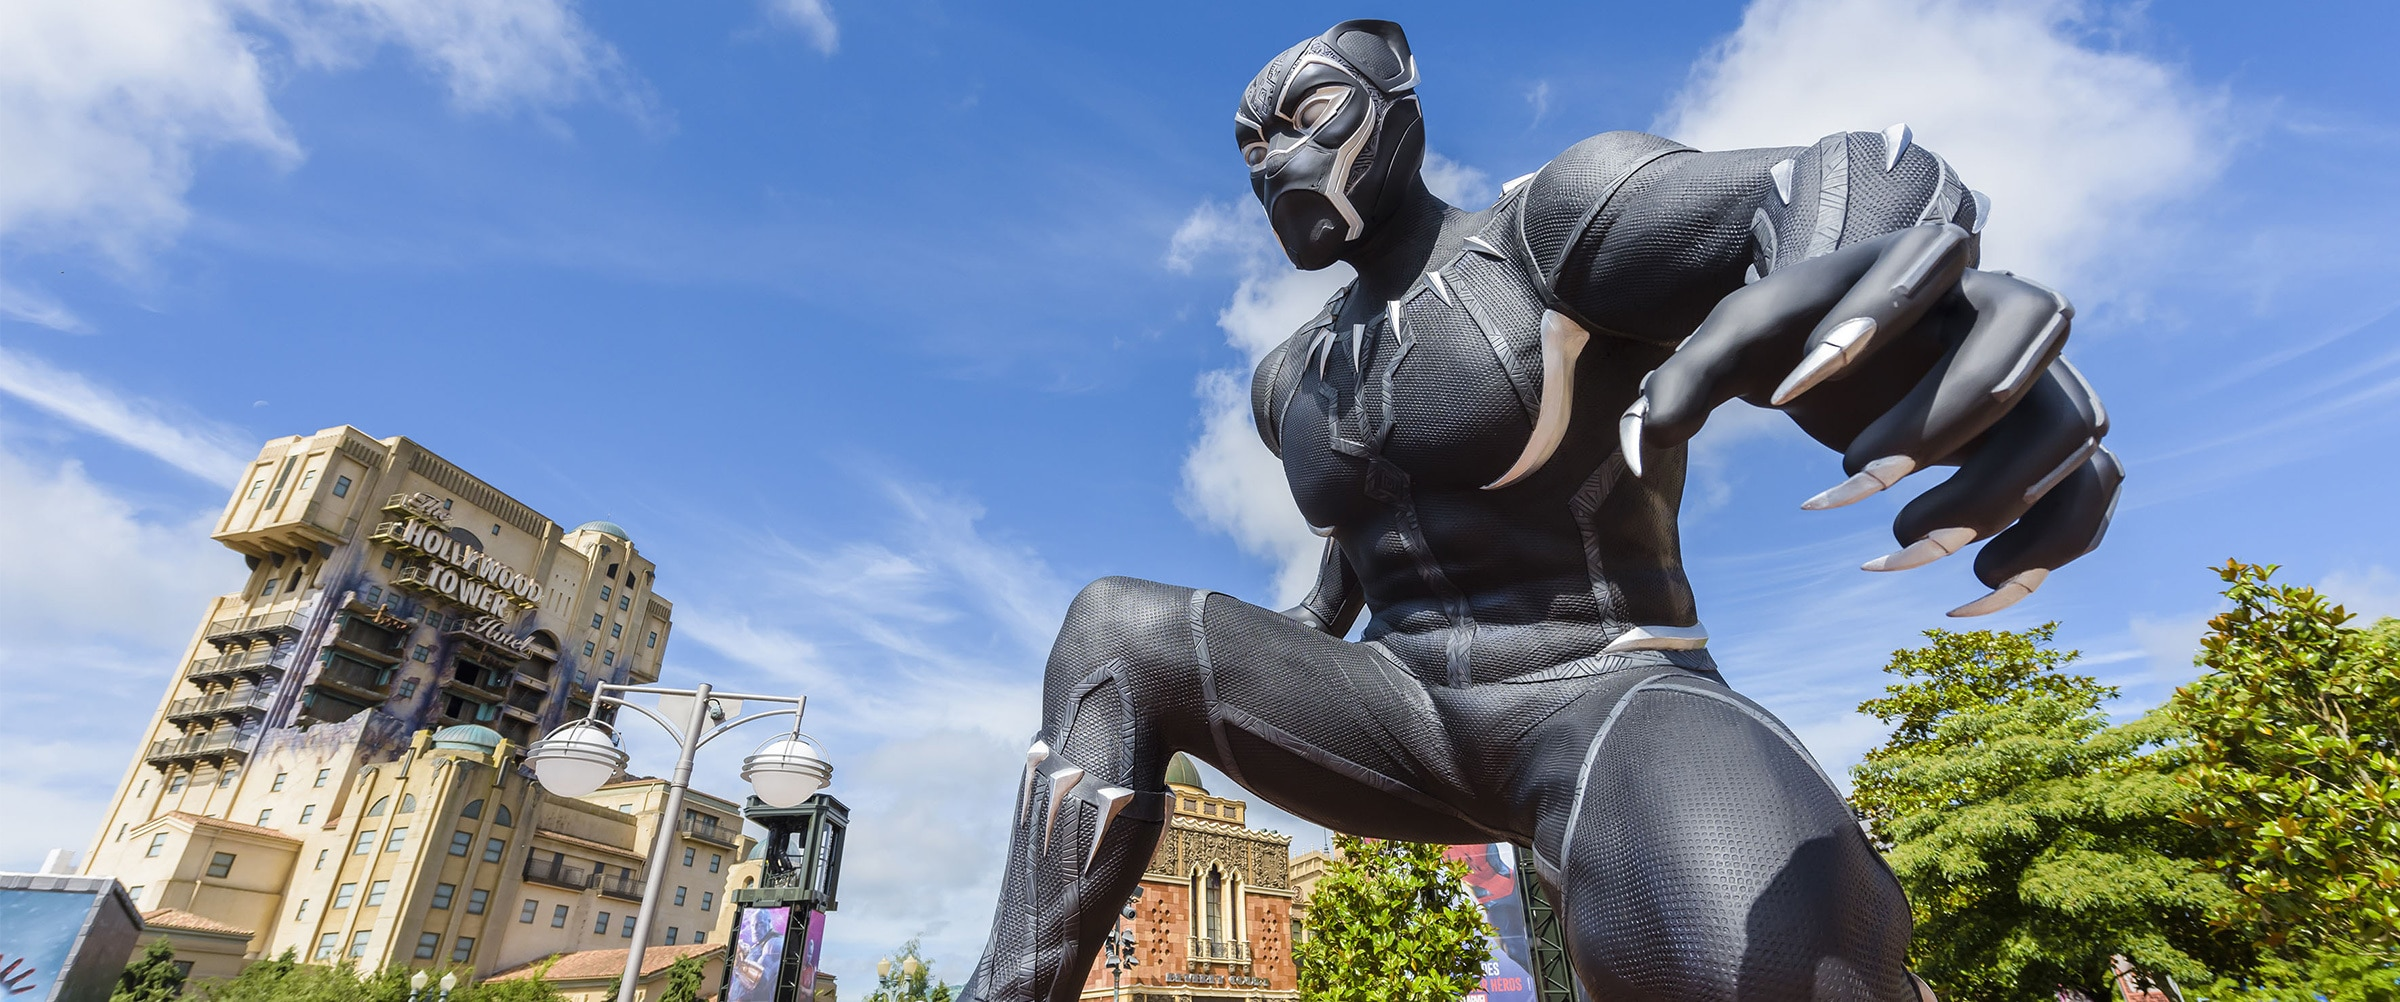 Marvel Summer of Super Heroes är på Disneyland Paris